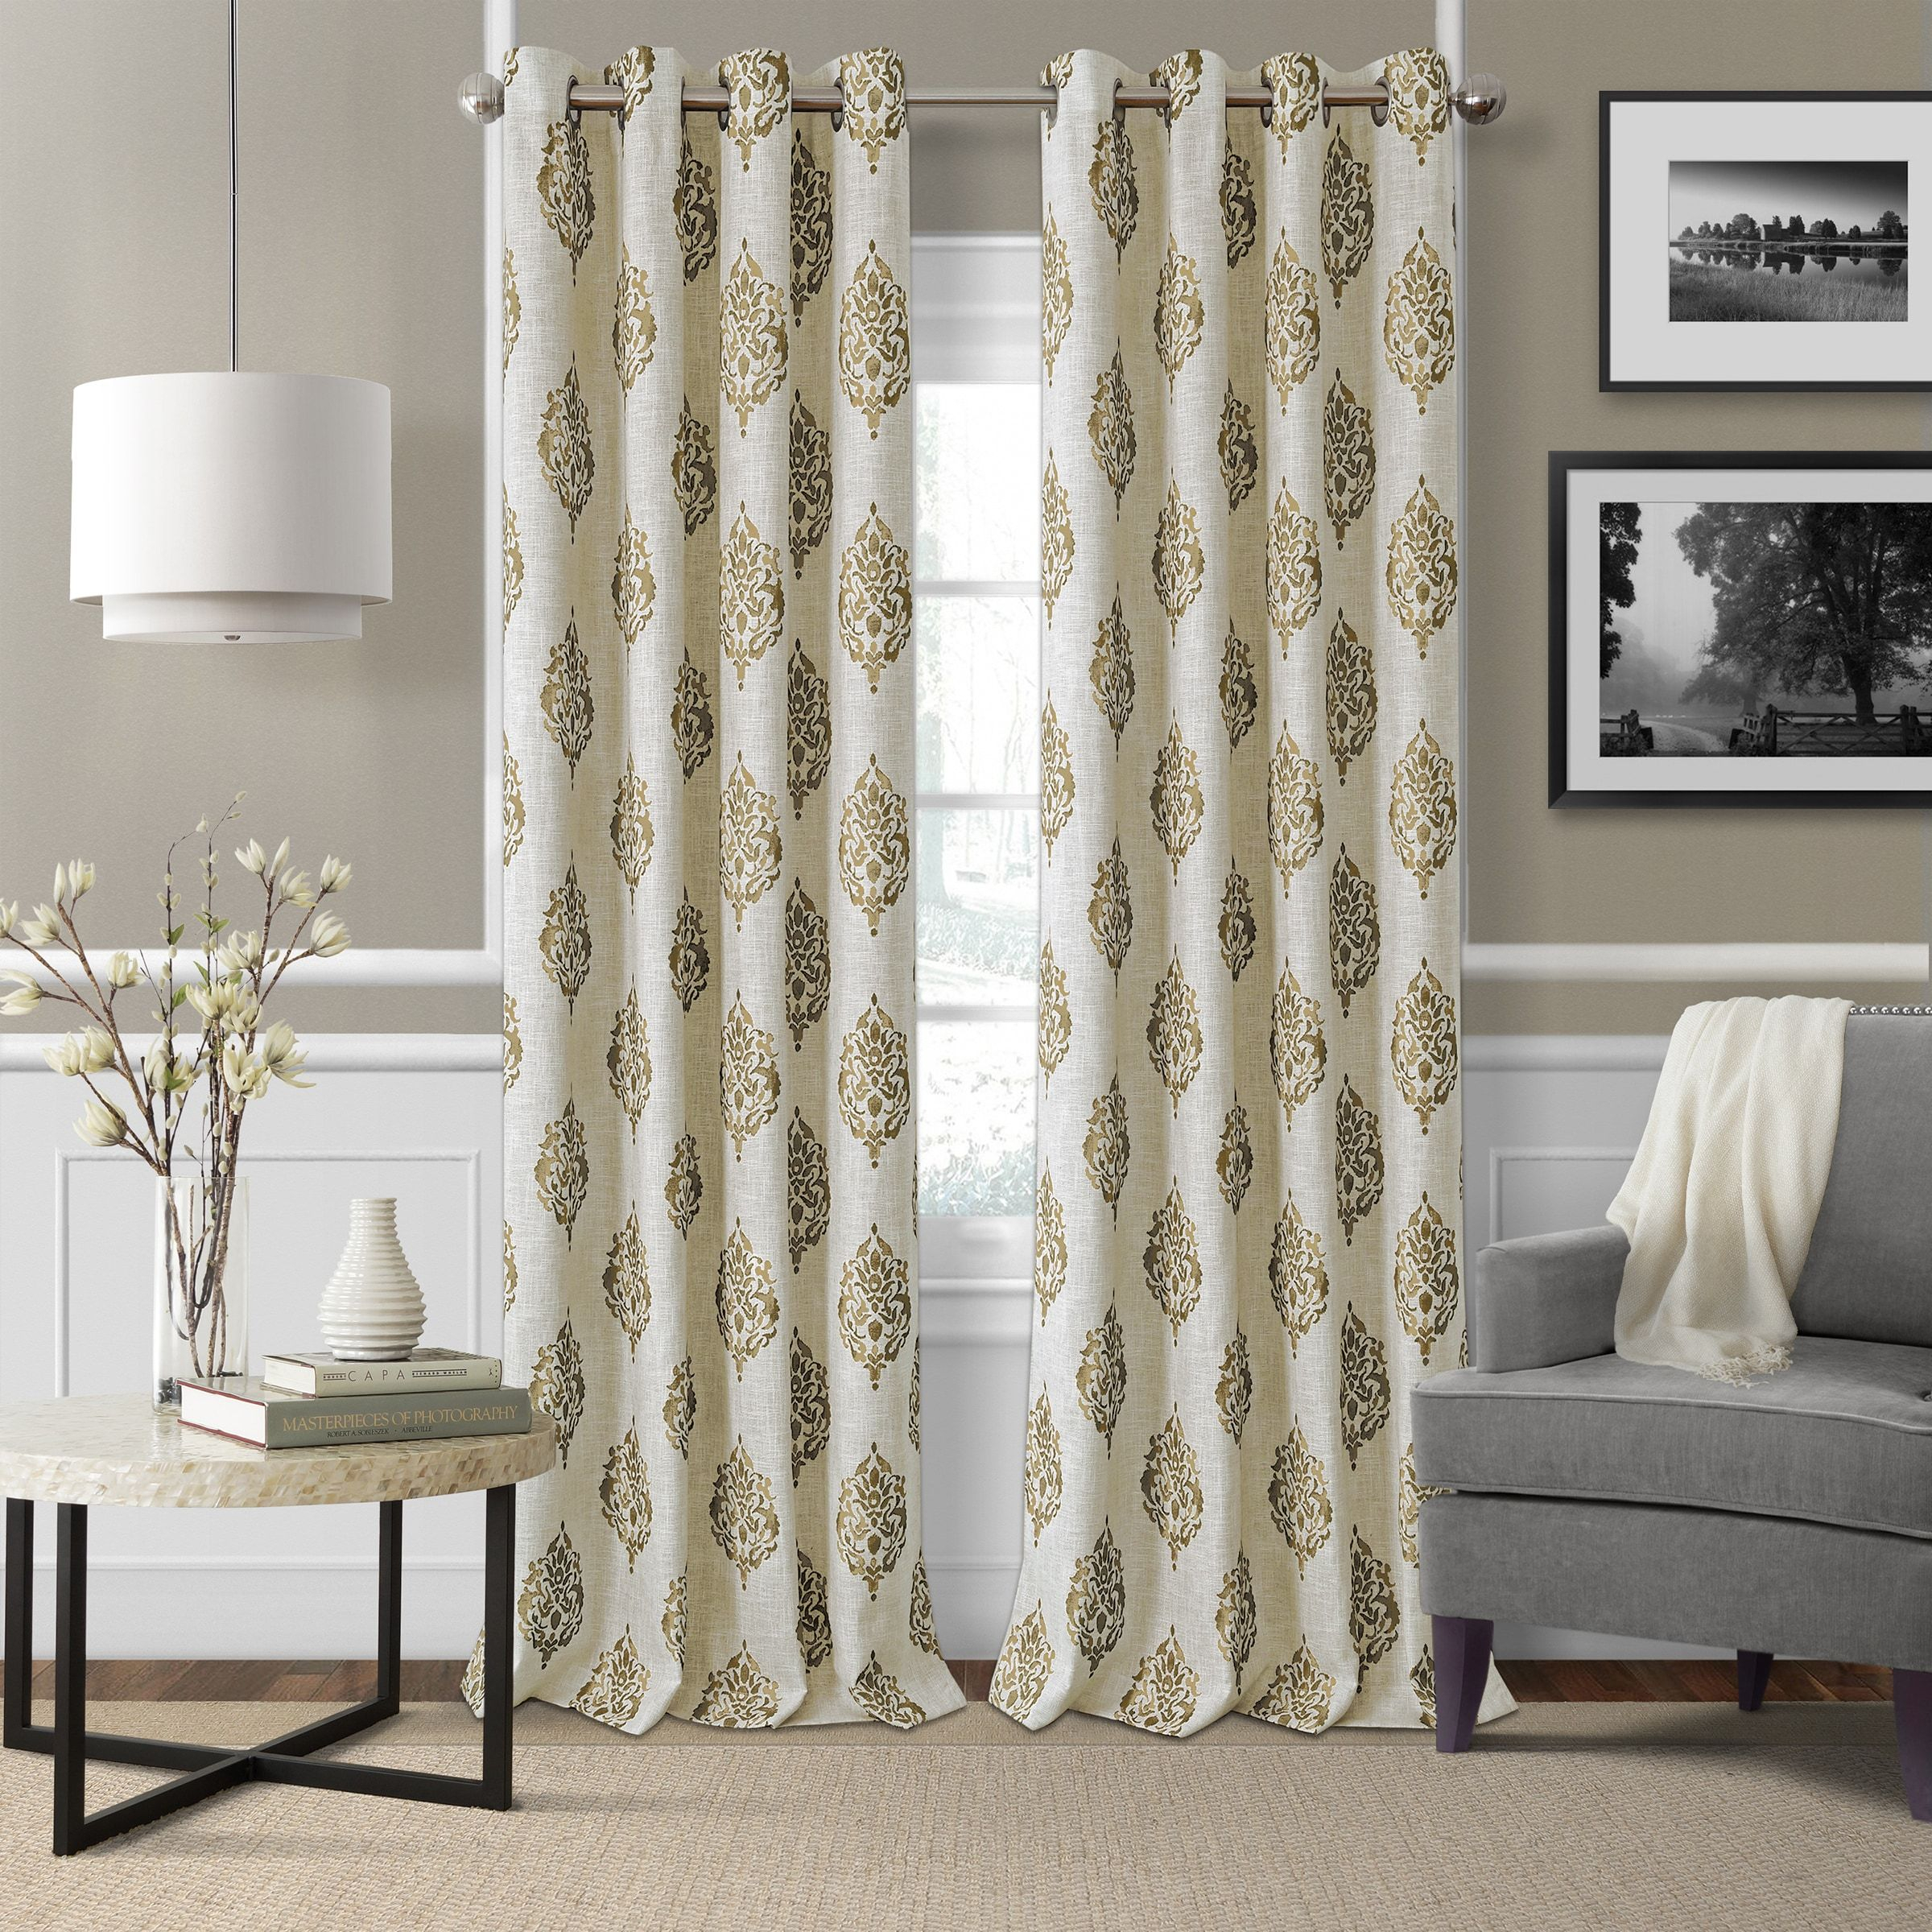 Elrene Navara Blackout Curtain Panel | Products | Panel In Primebeau Geometric Pattern Blackout Curtain Pairs (View 8 of 20)